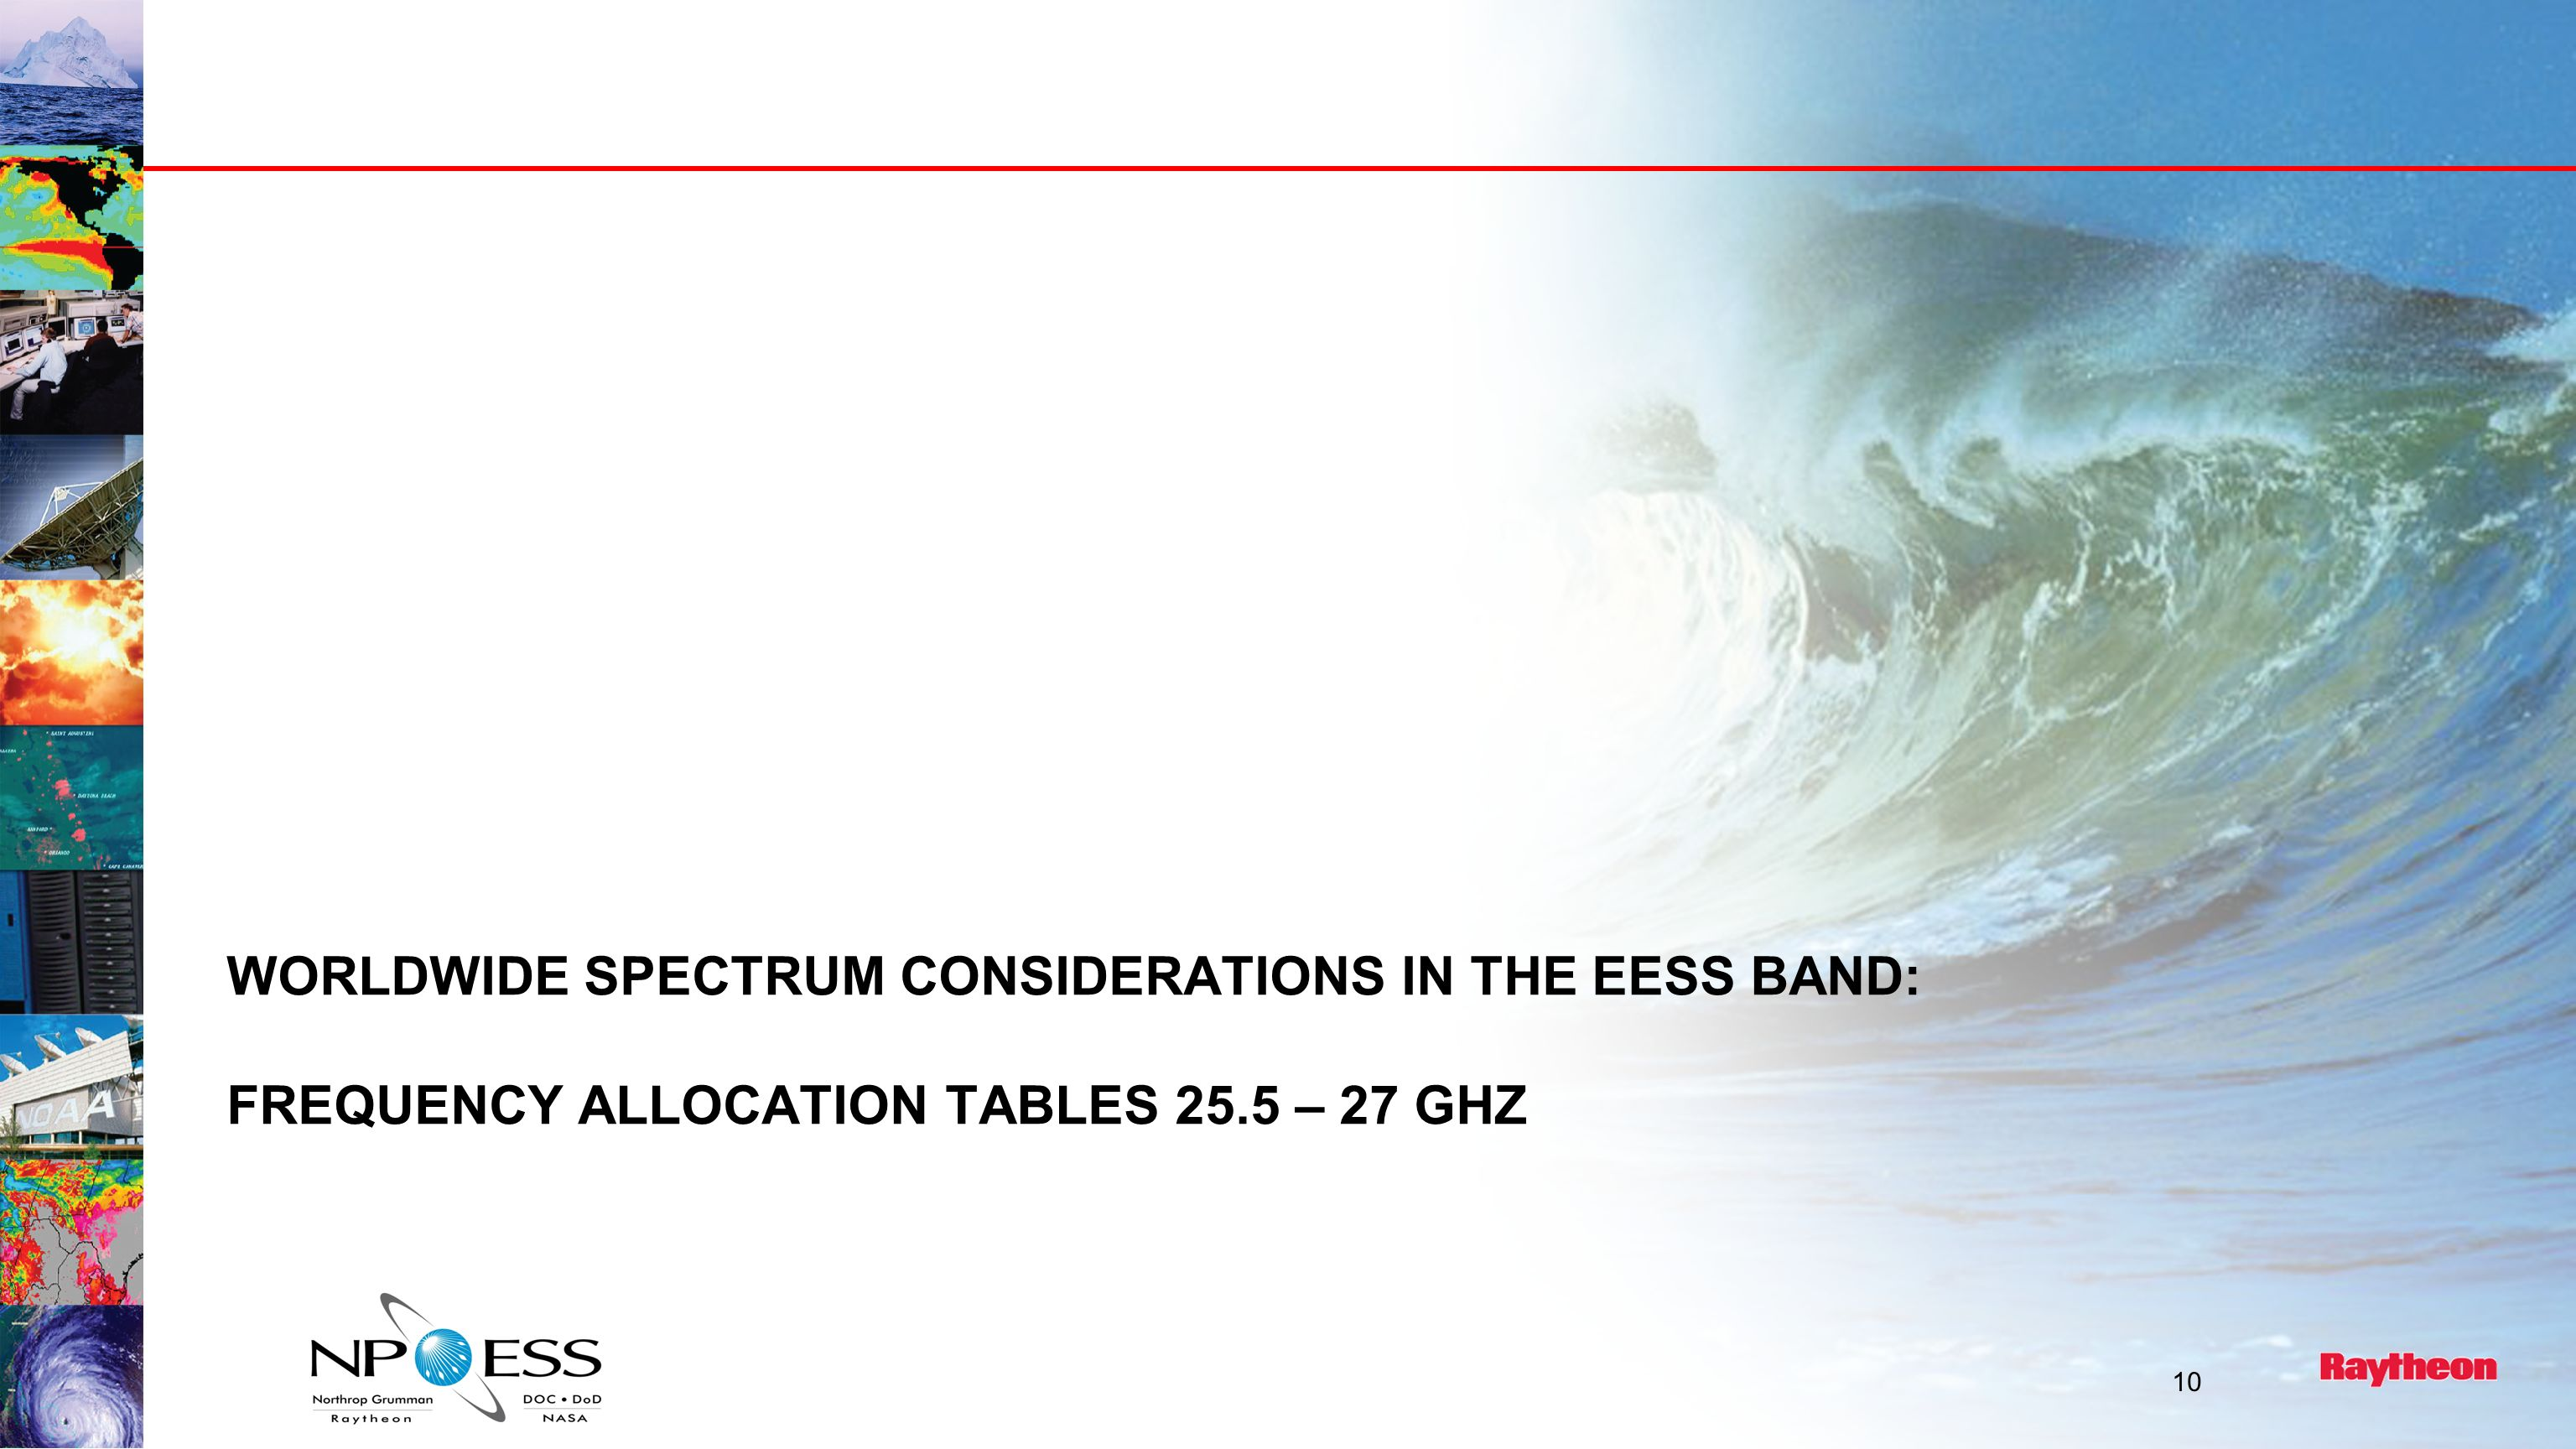 WORLDWIDE SPECTRUM CONSIDERATIONS IN THE EESS BAND: FREQUENCY ALLOCATION TABLES 25.5 – 27 GHZ 10